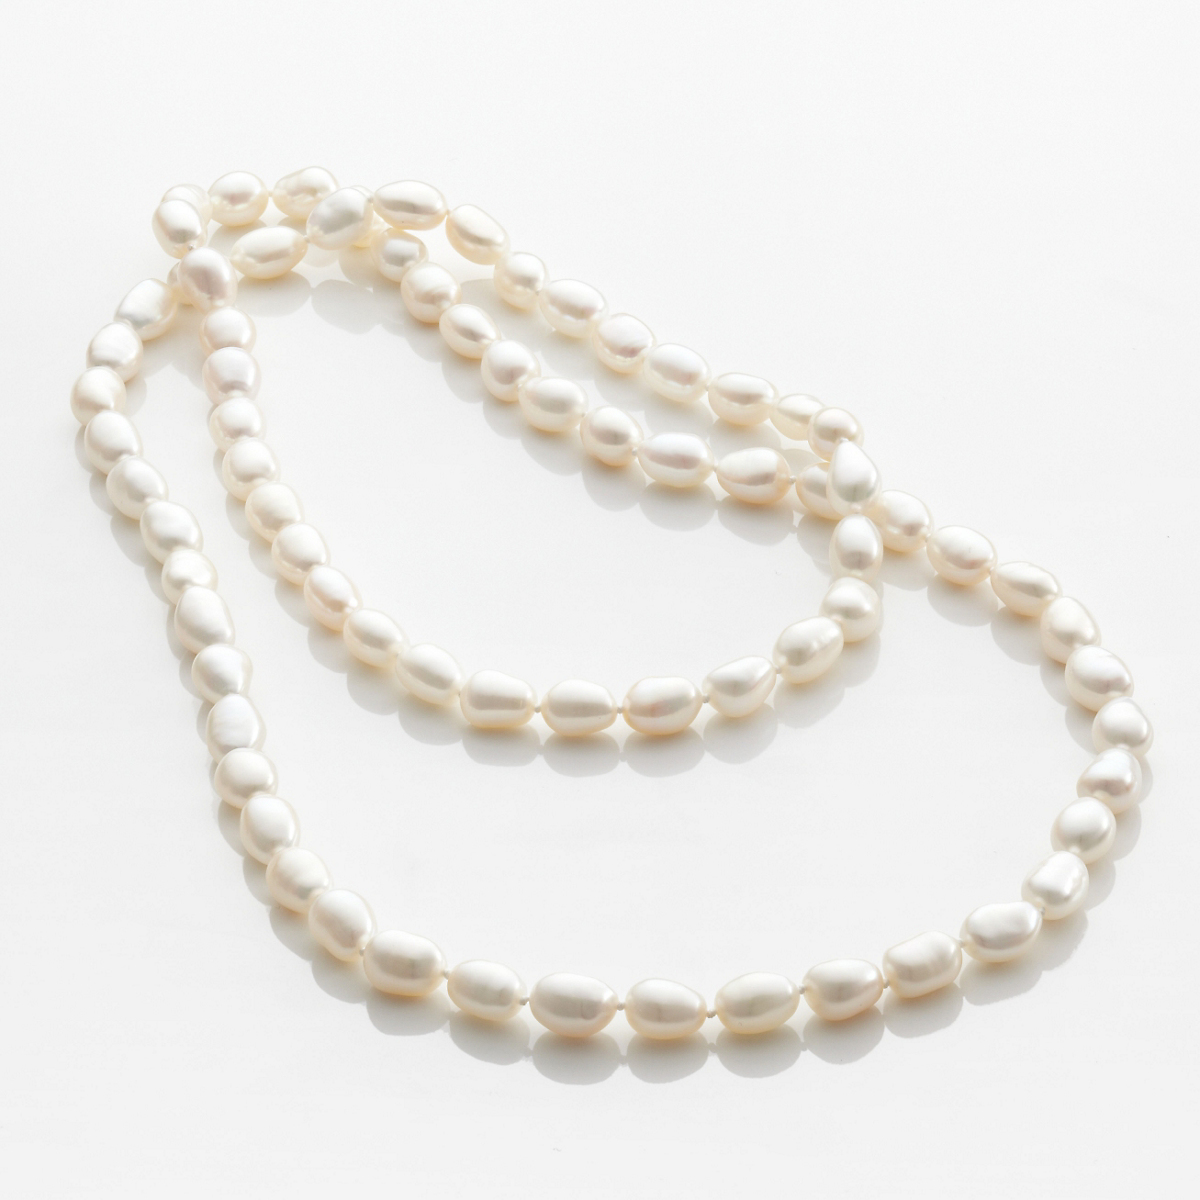 Gump's Baroque Pearl Rope Necklace